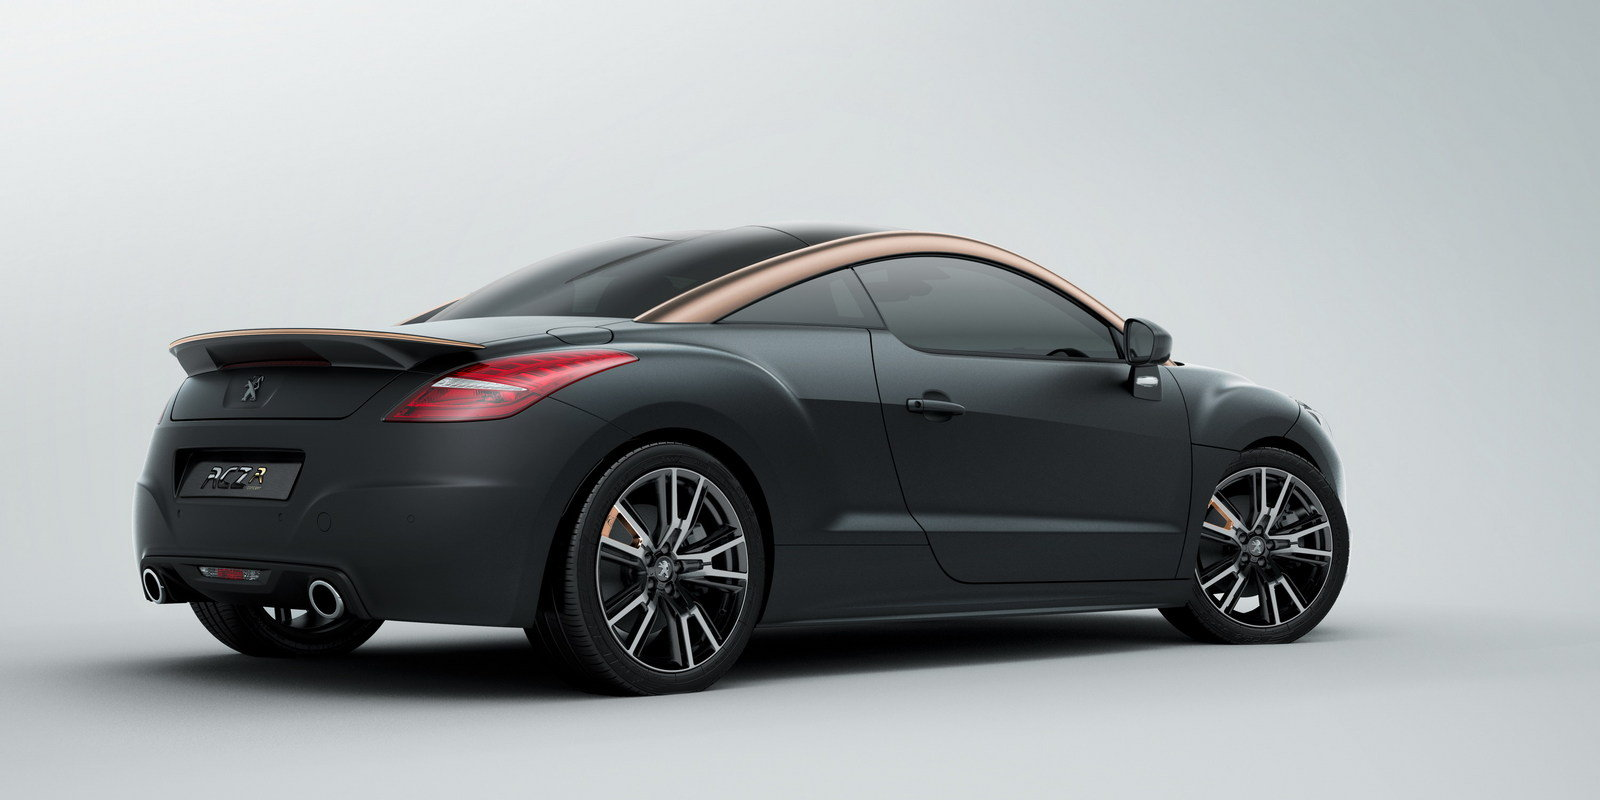 2012 peugeot rcz r concept picture 472914 car review top speed. Black Bedroom Furniture Sets. Home Design Ideas